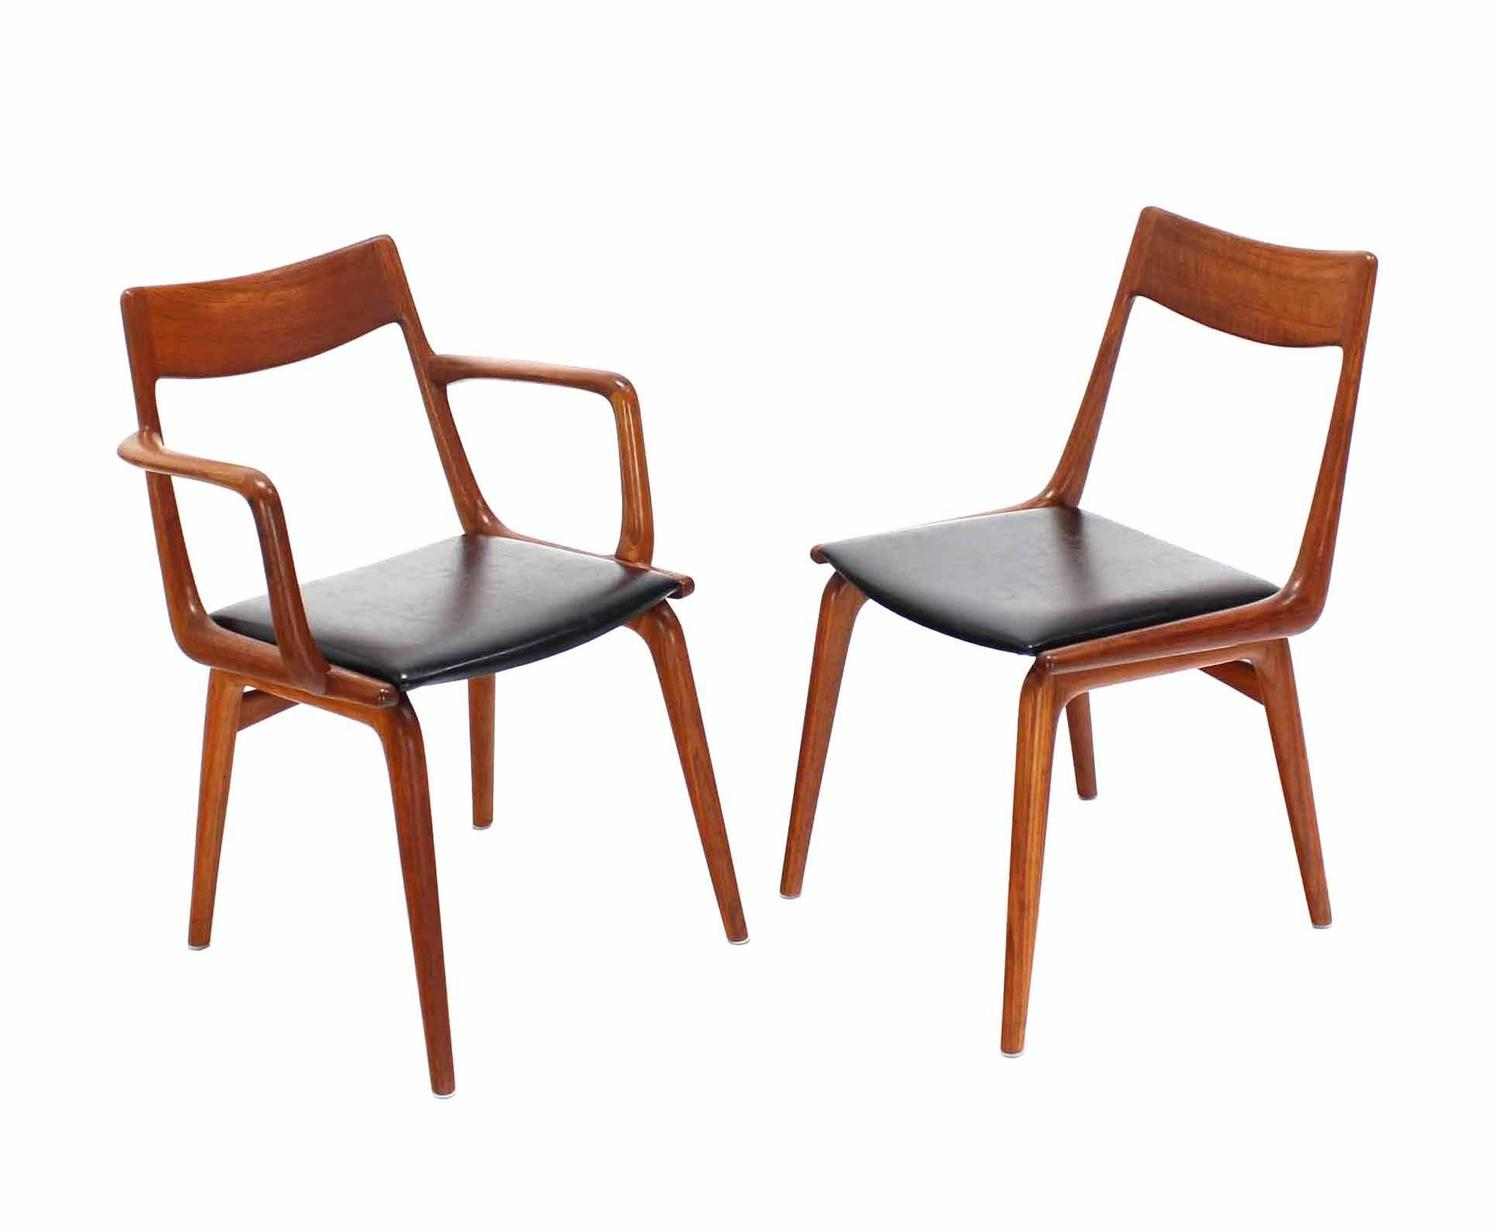 sculpted walnut mid century modern dining chairs for sale at 1stdibs